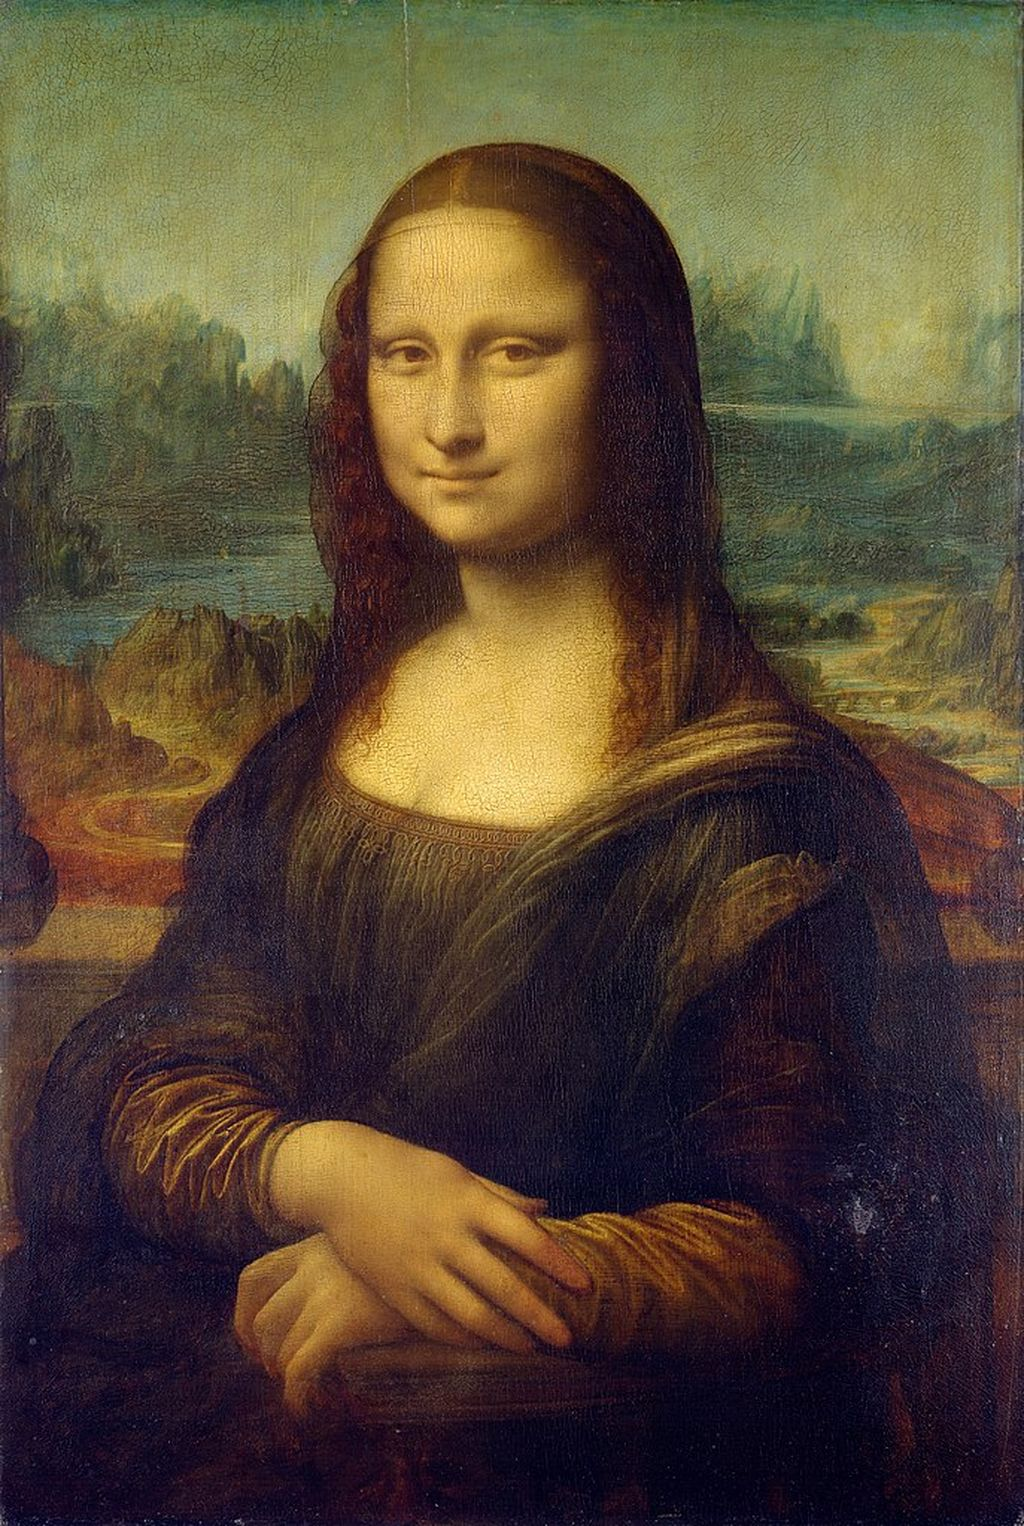 687px-Mona_Lisa,_by_Leonardo_da_Vinci,_from_C2RMF_retouched-done